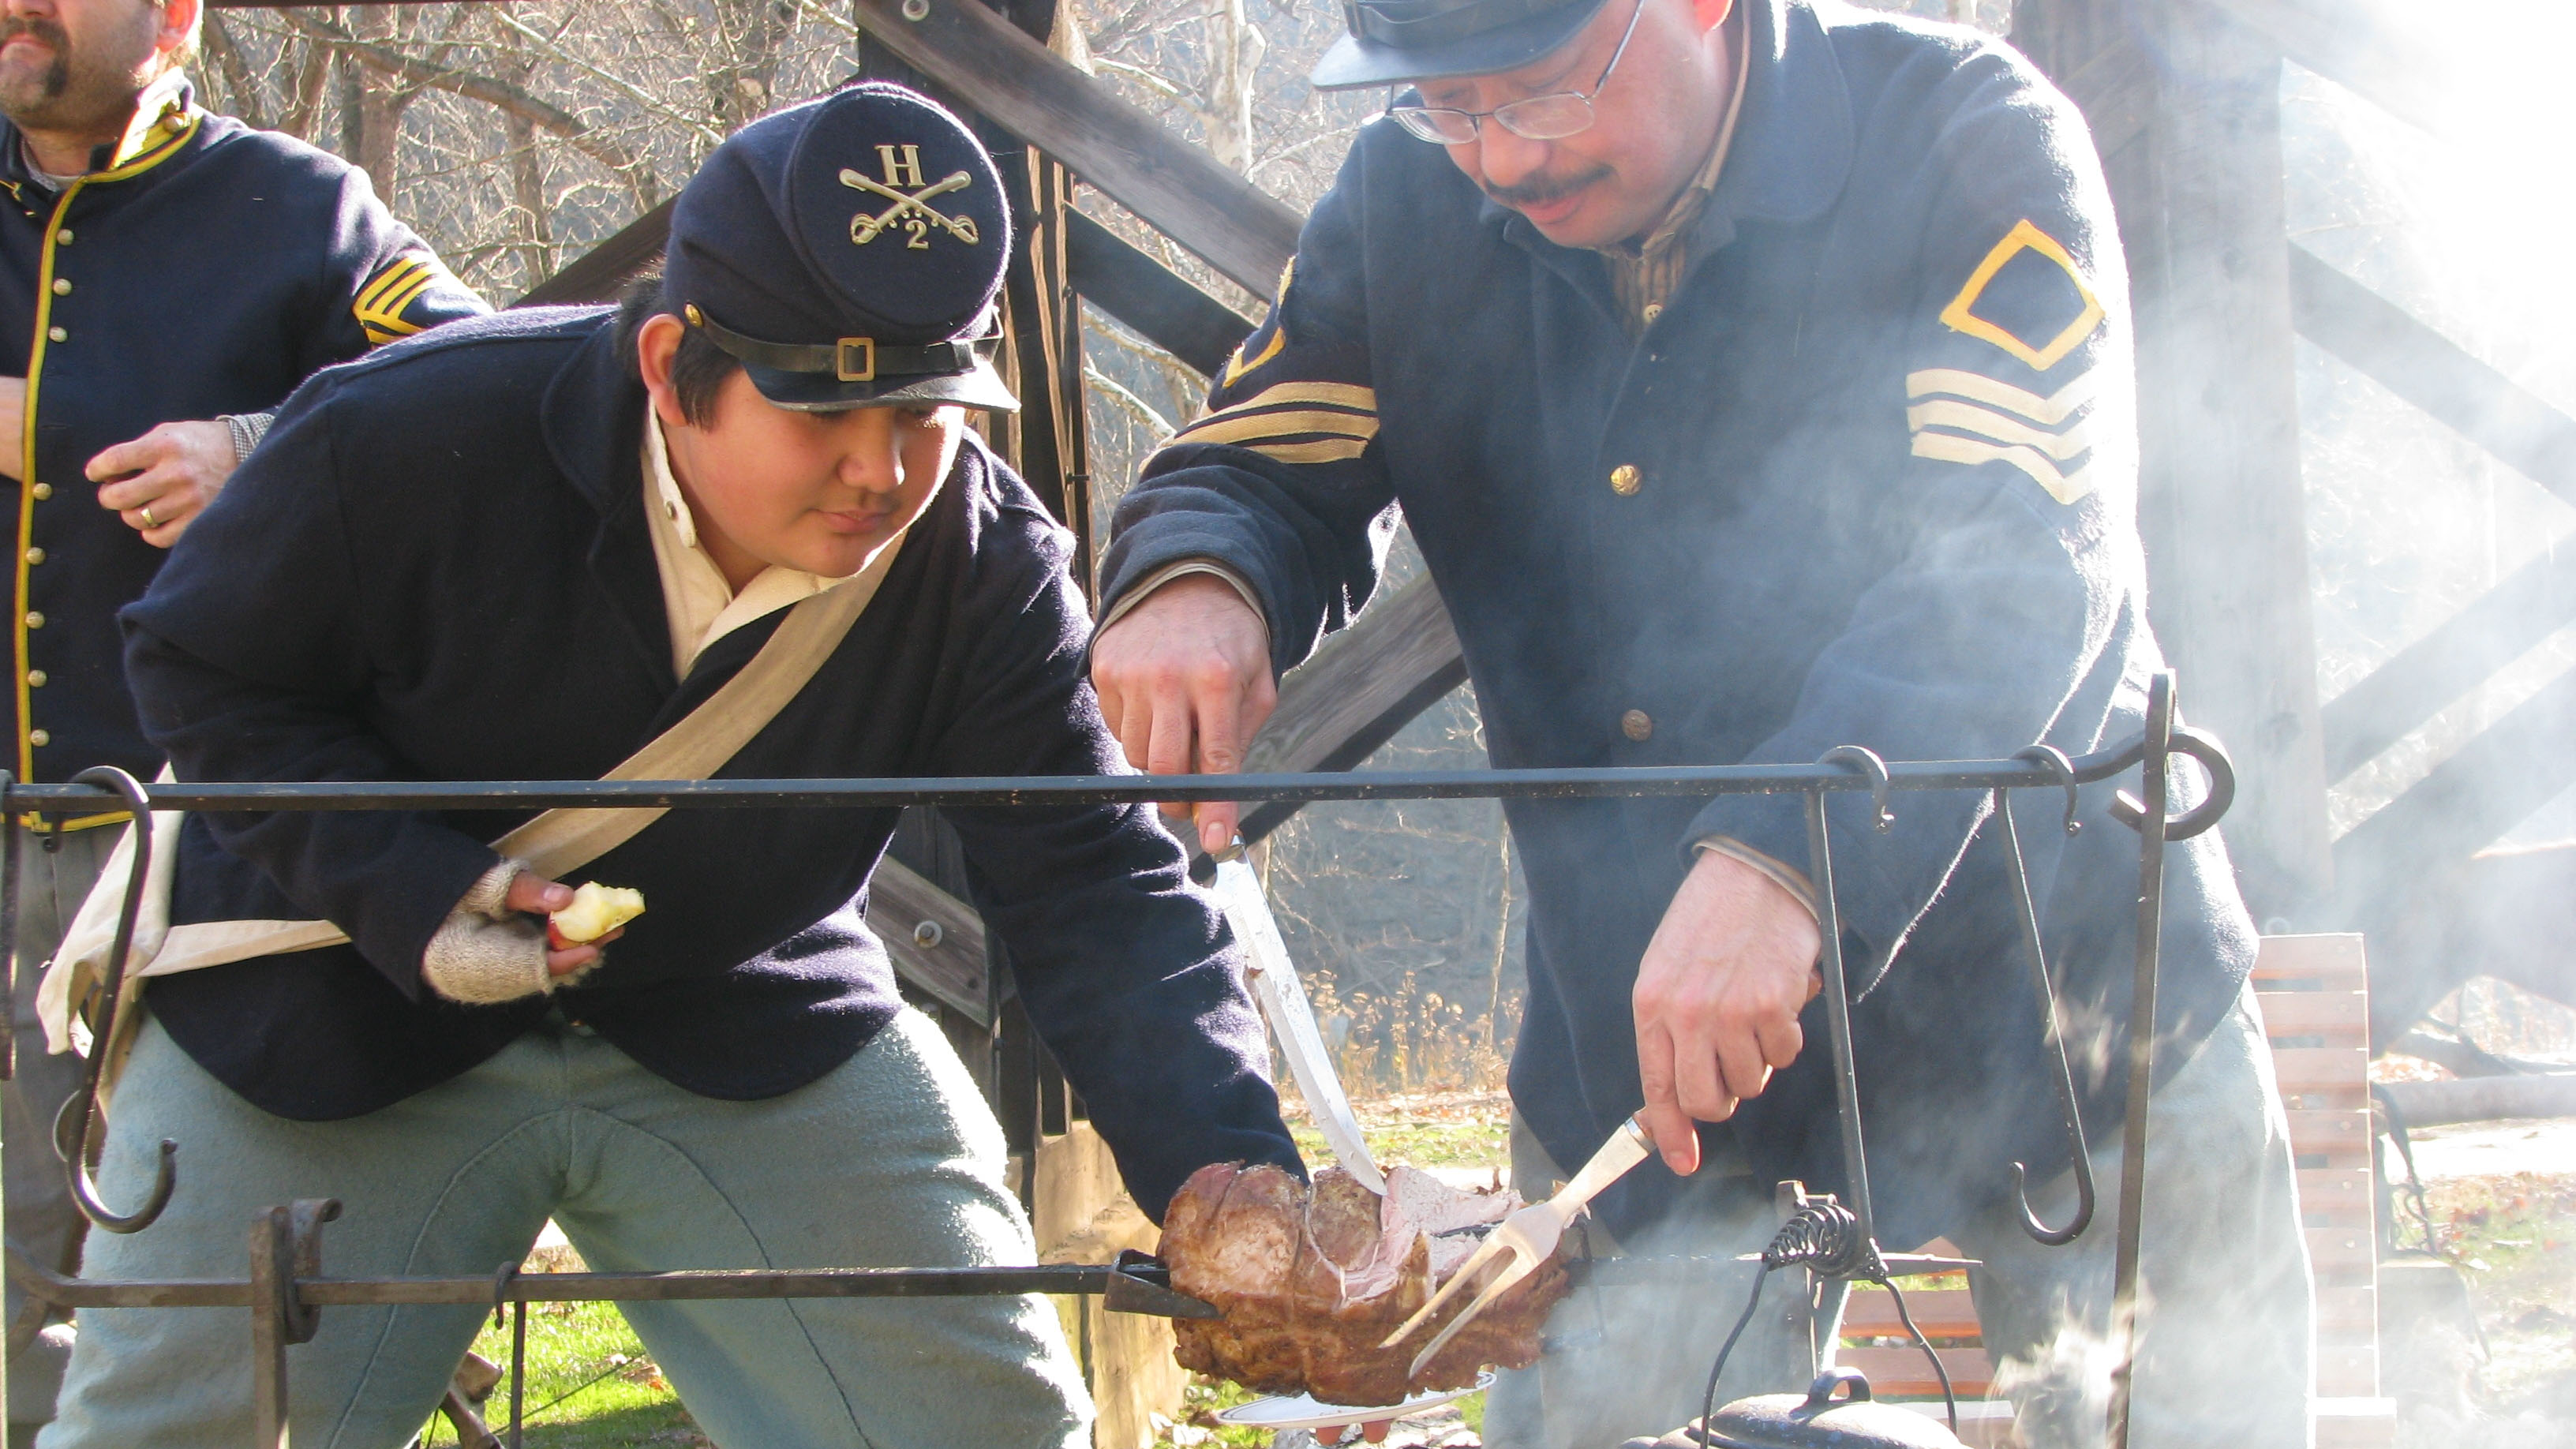 Reenactors in Capt. Flagg's US Quartermaster City: Approach of Peace in Harpers Ferry, Maryland. Photo courtesy of the National Park Service.